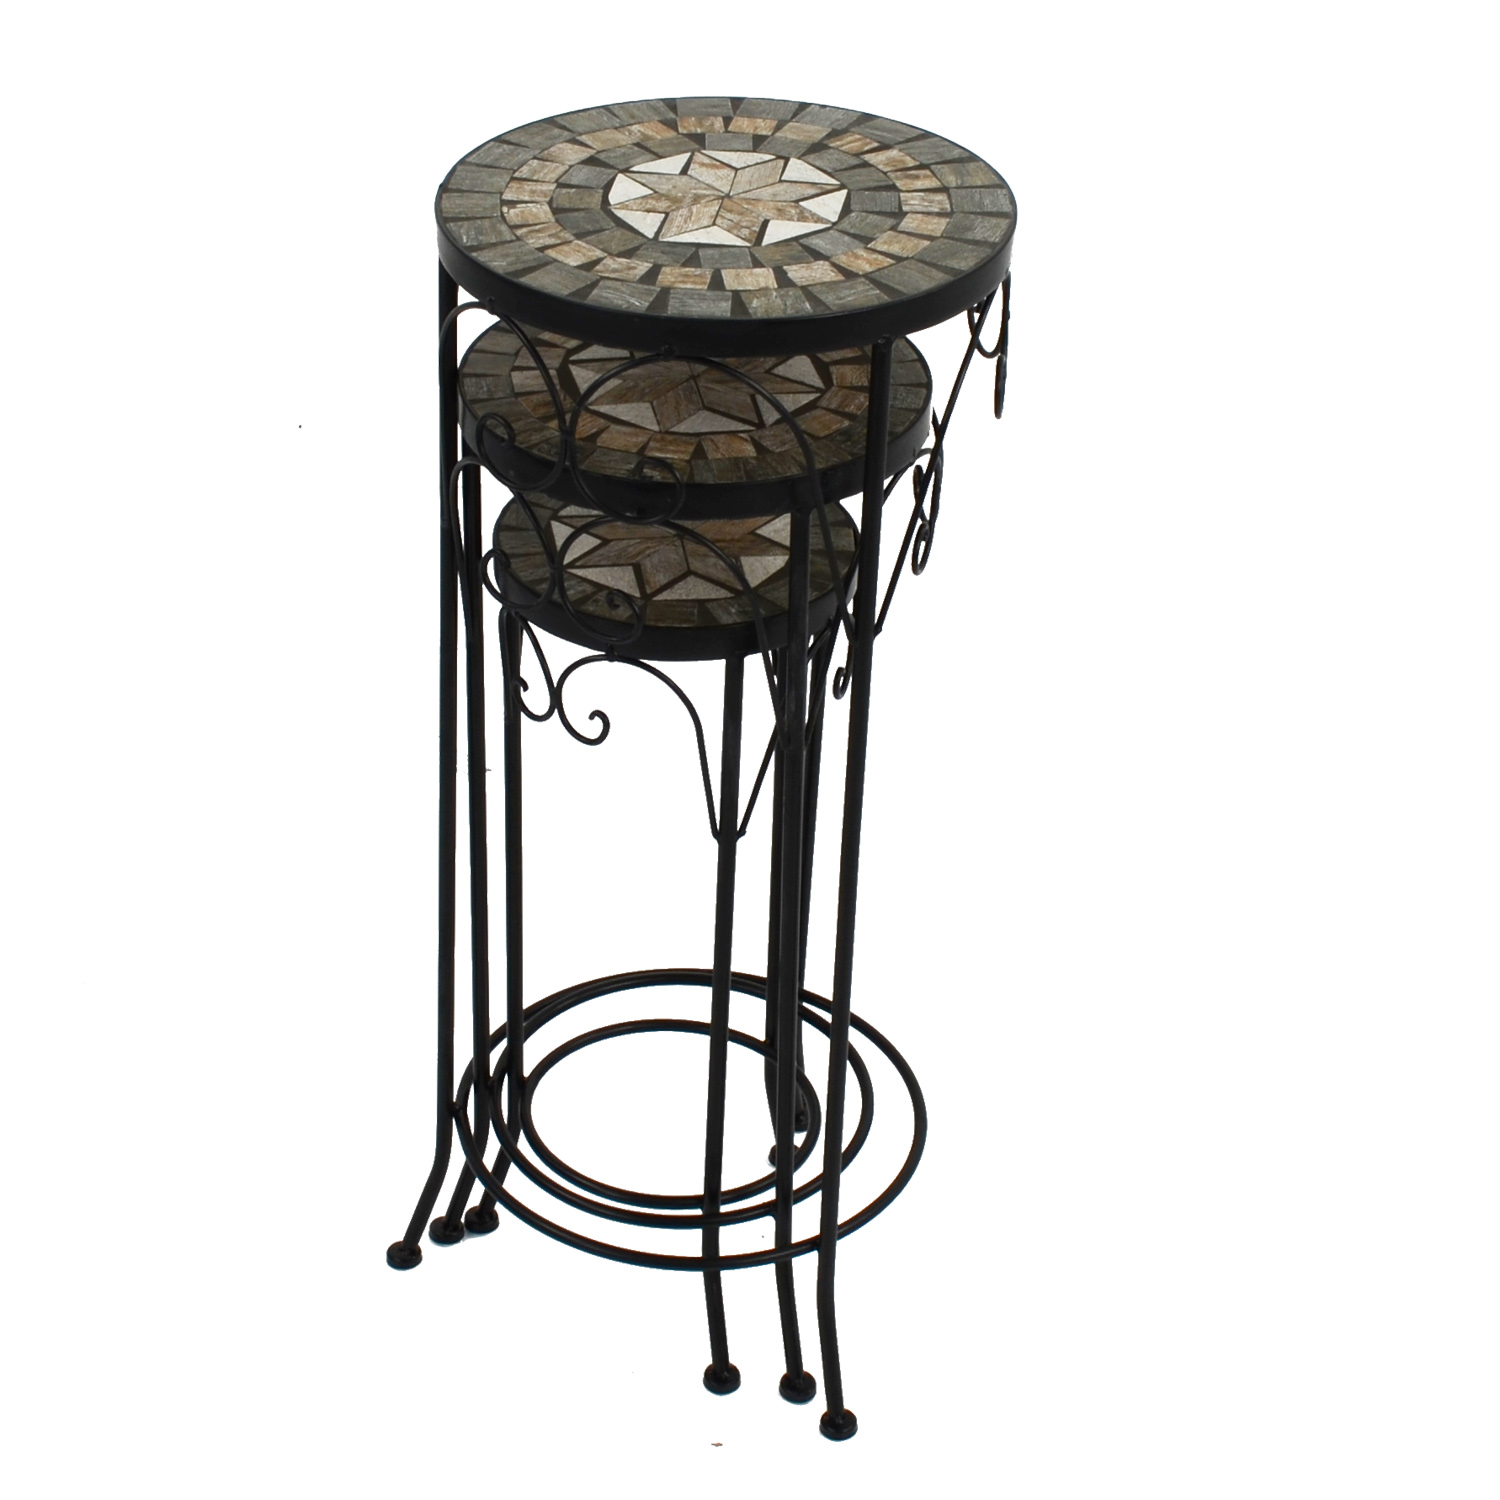 BRAVA PLANTSTAND SET OF 3 TALL STACKED